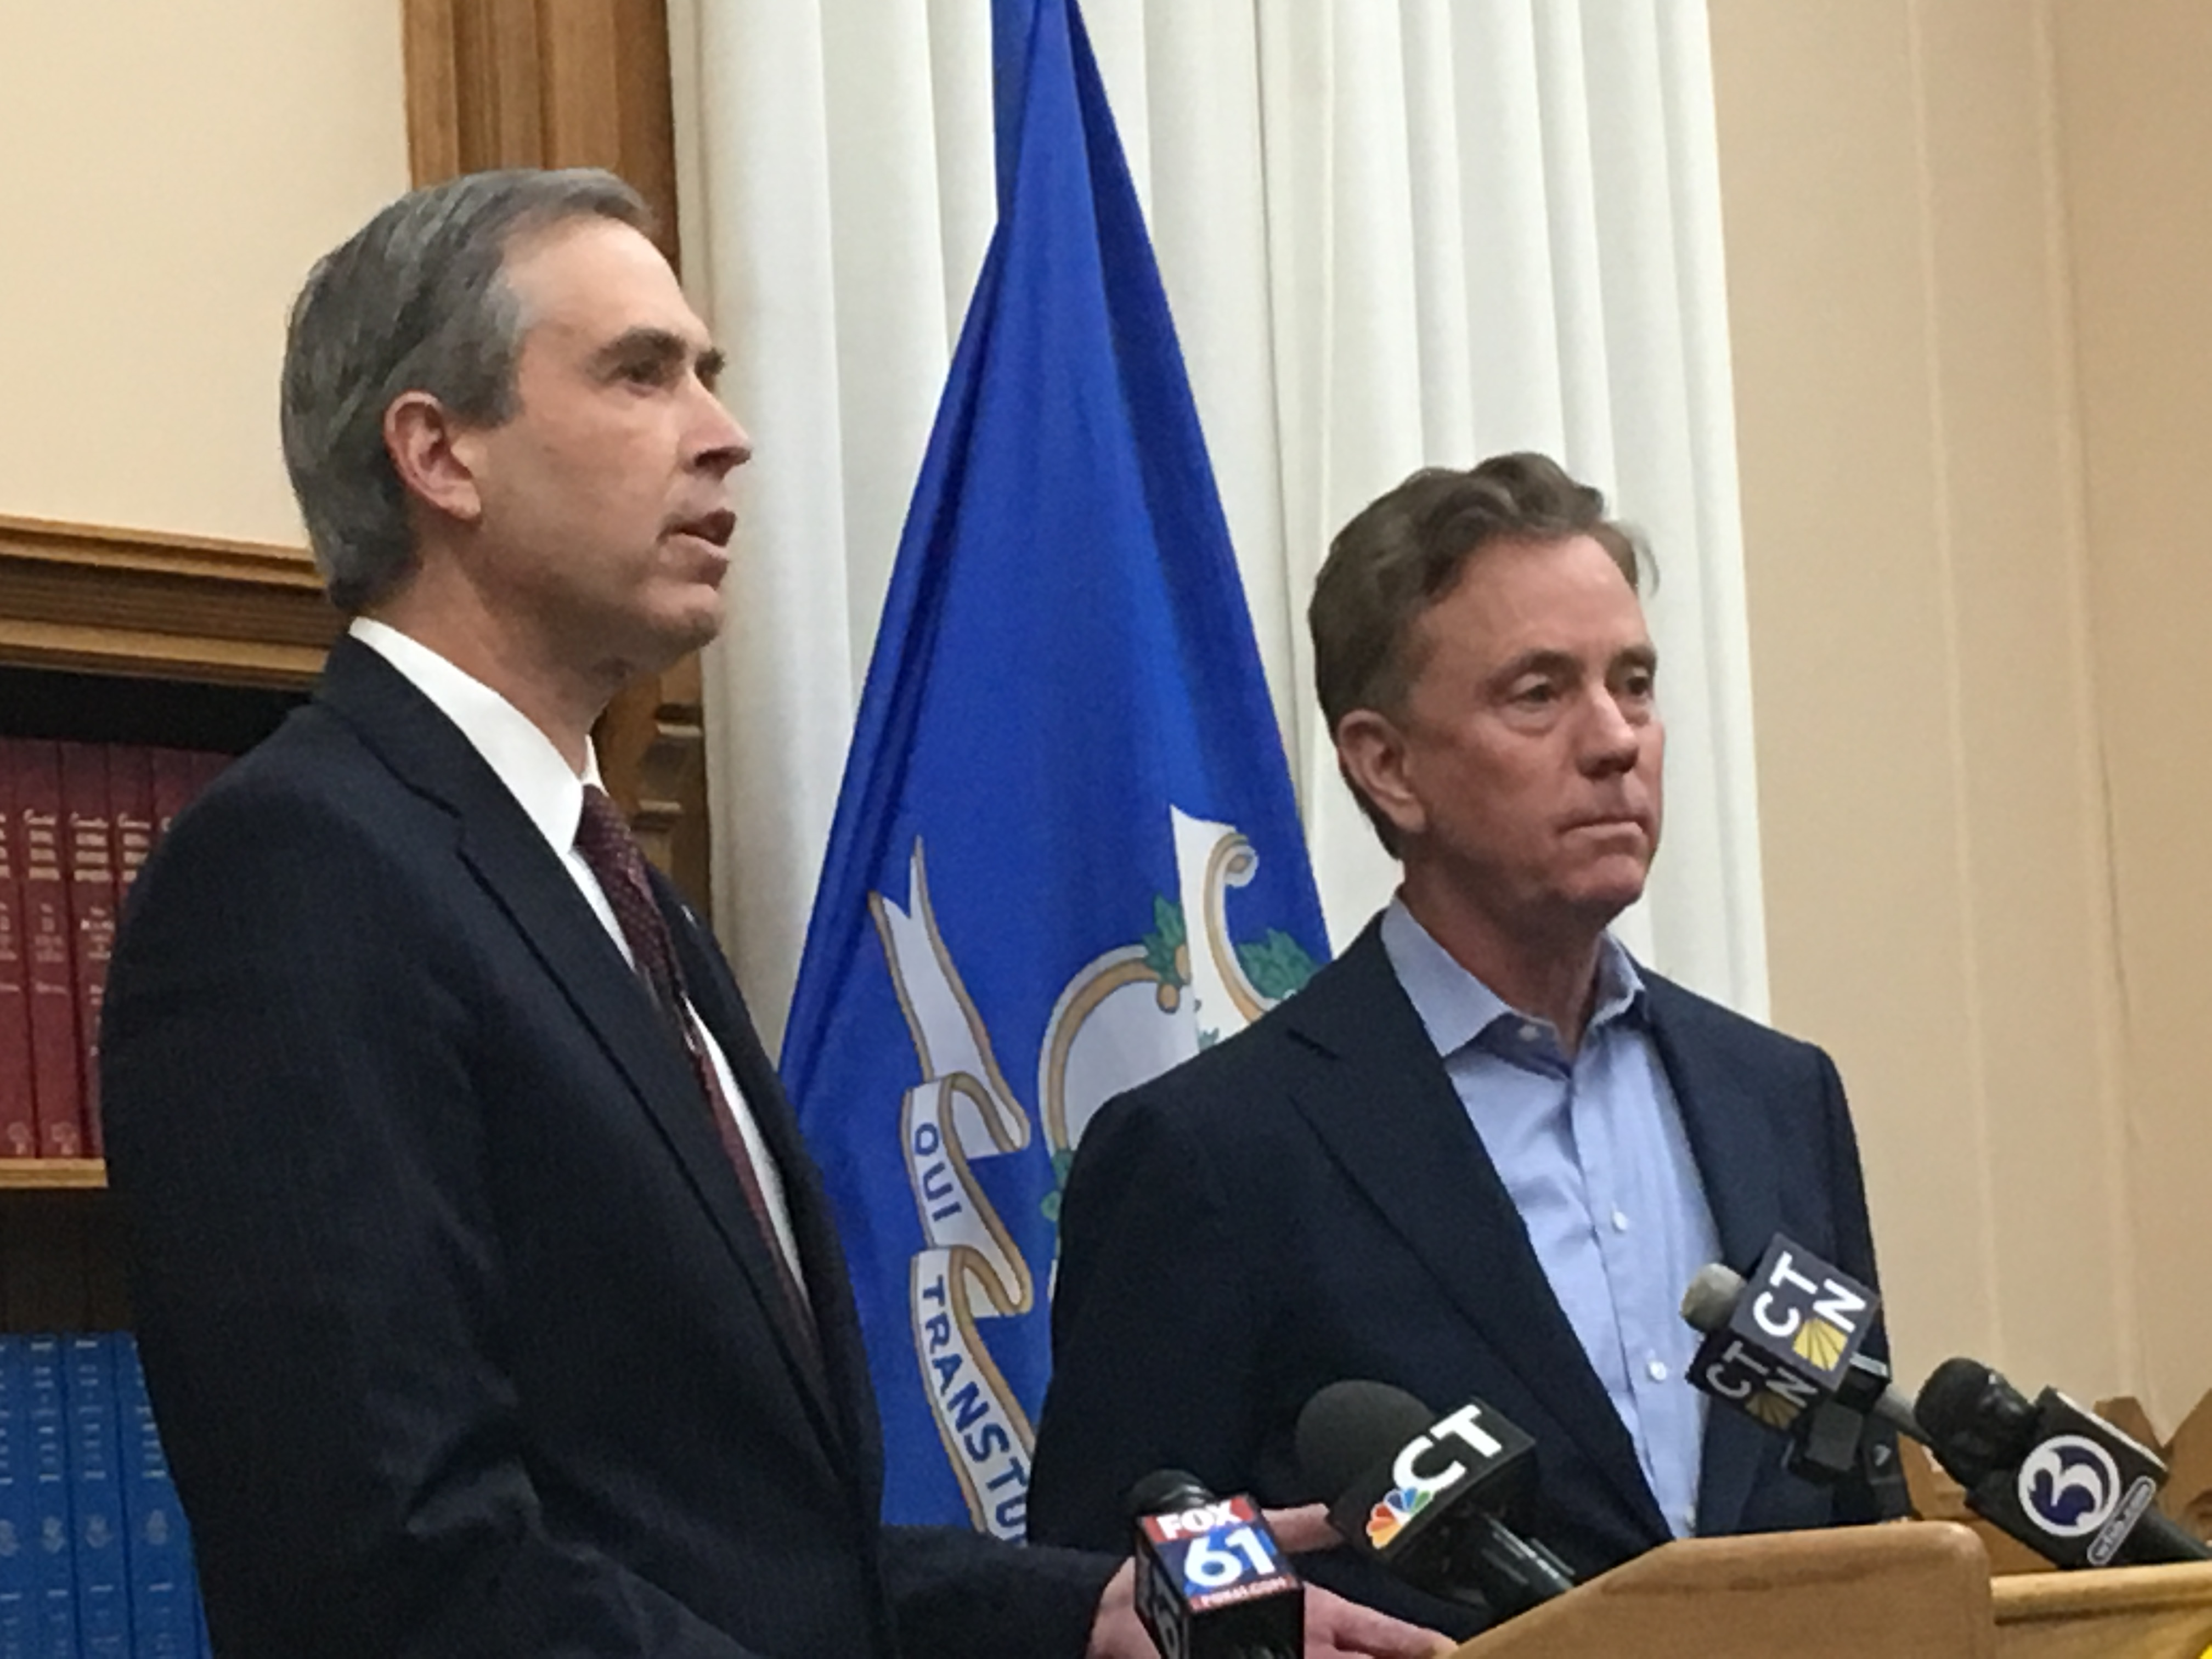 Lamont, Webster Bank, announce loans for federal workers